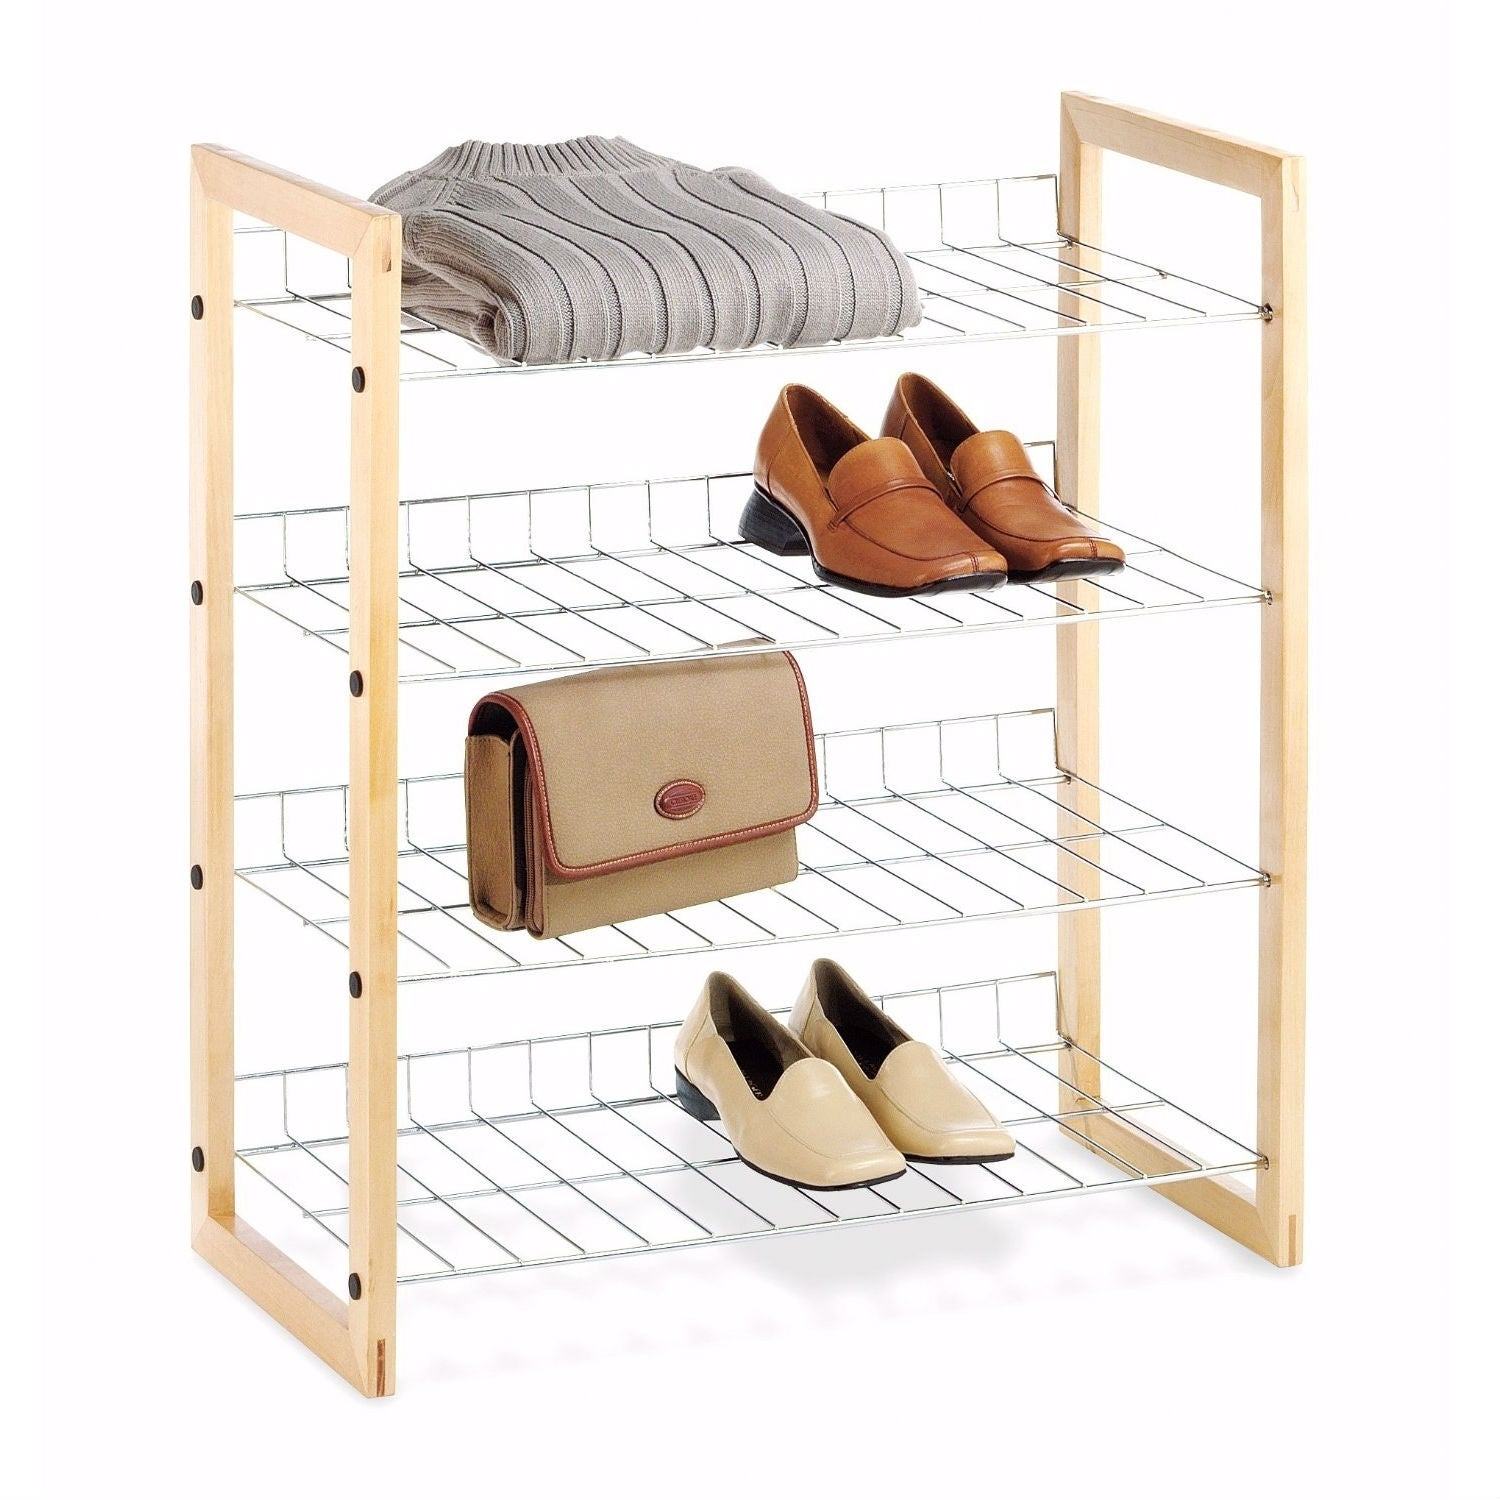 Shop Black Friday Deals On 4 Shelf Closet Shoe Rack With Natural Wood Frame And Chrome Wire Shelves Overstock 29063668